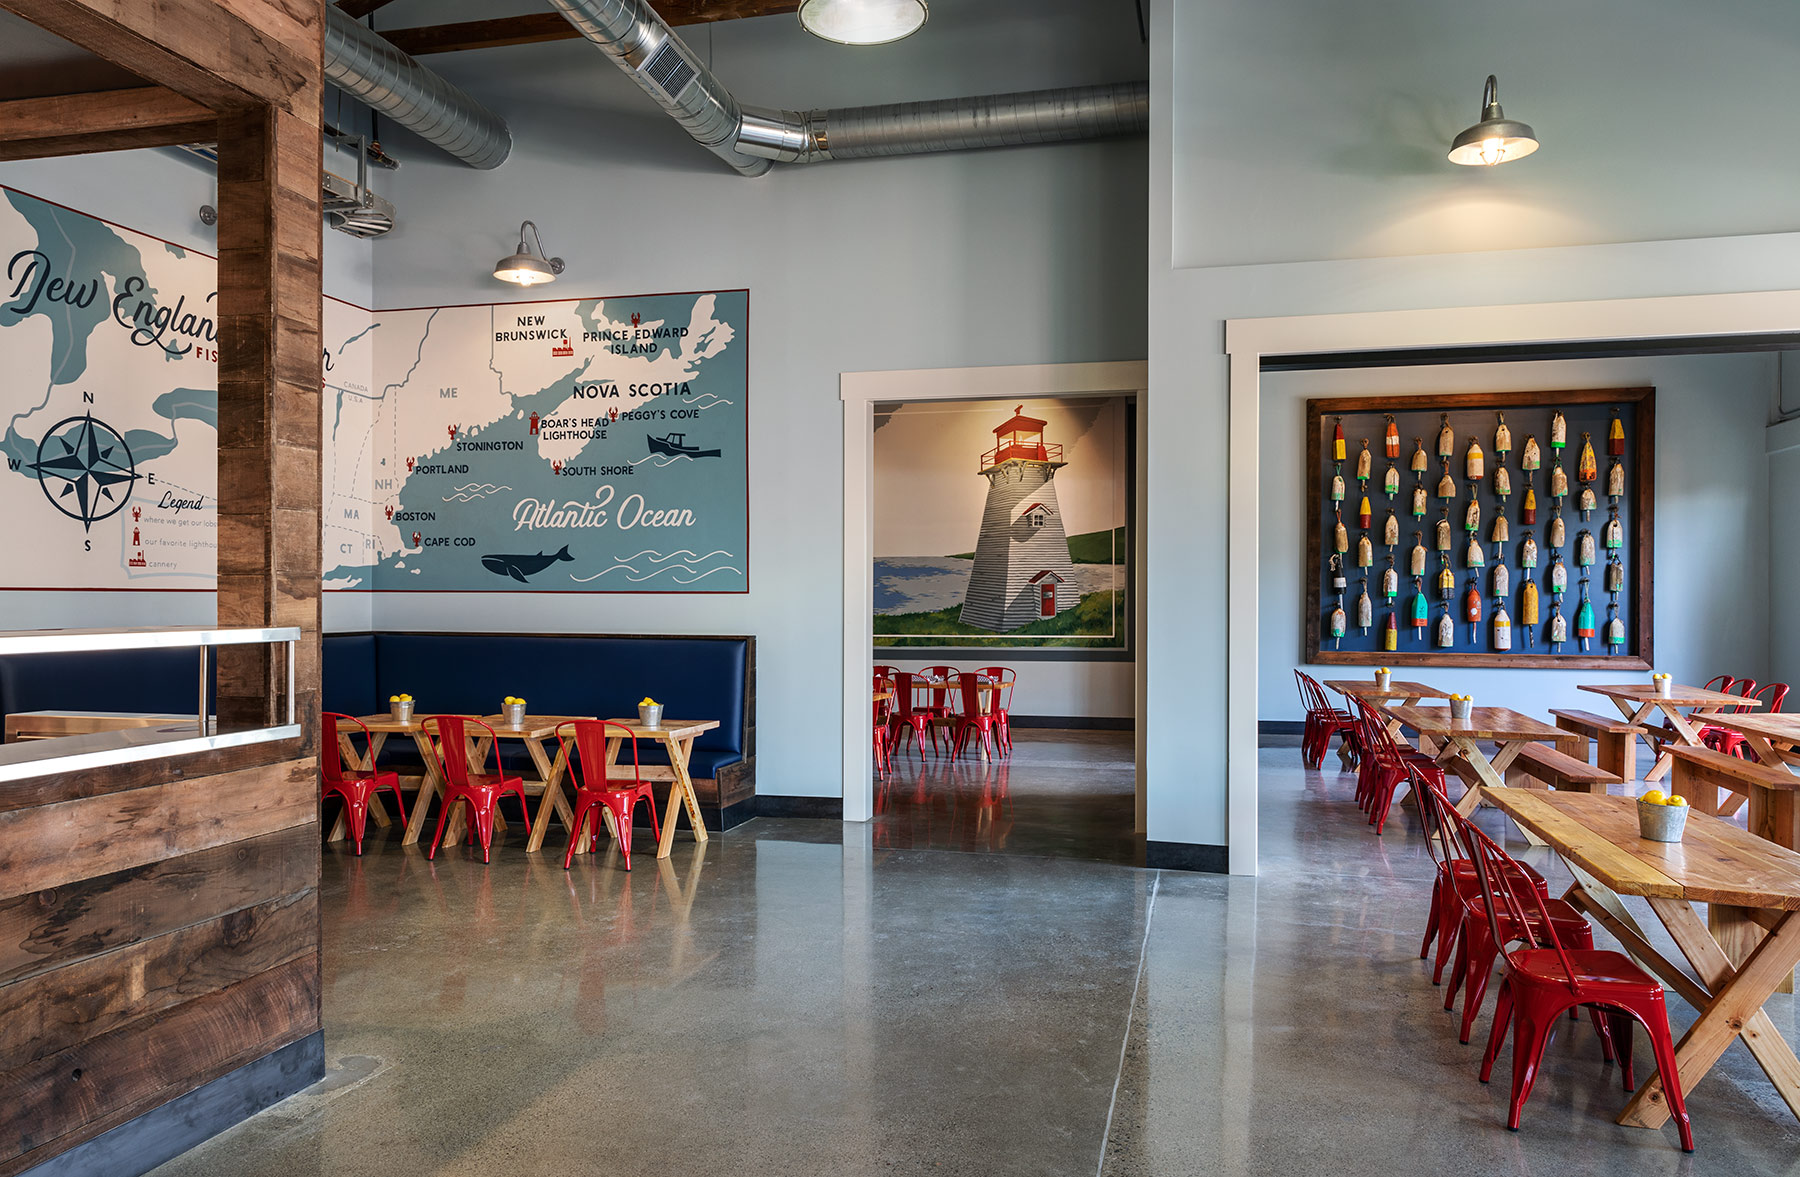 UMK Architecture  | New England Lobster Market & Eatery